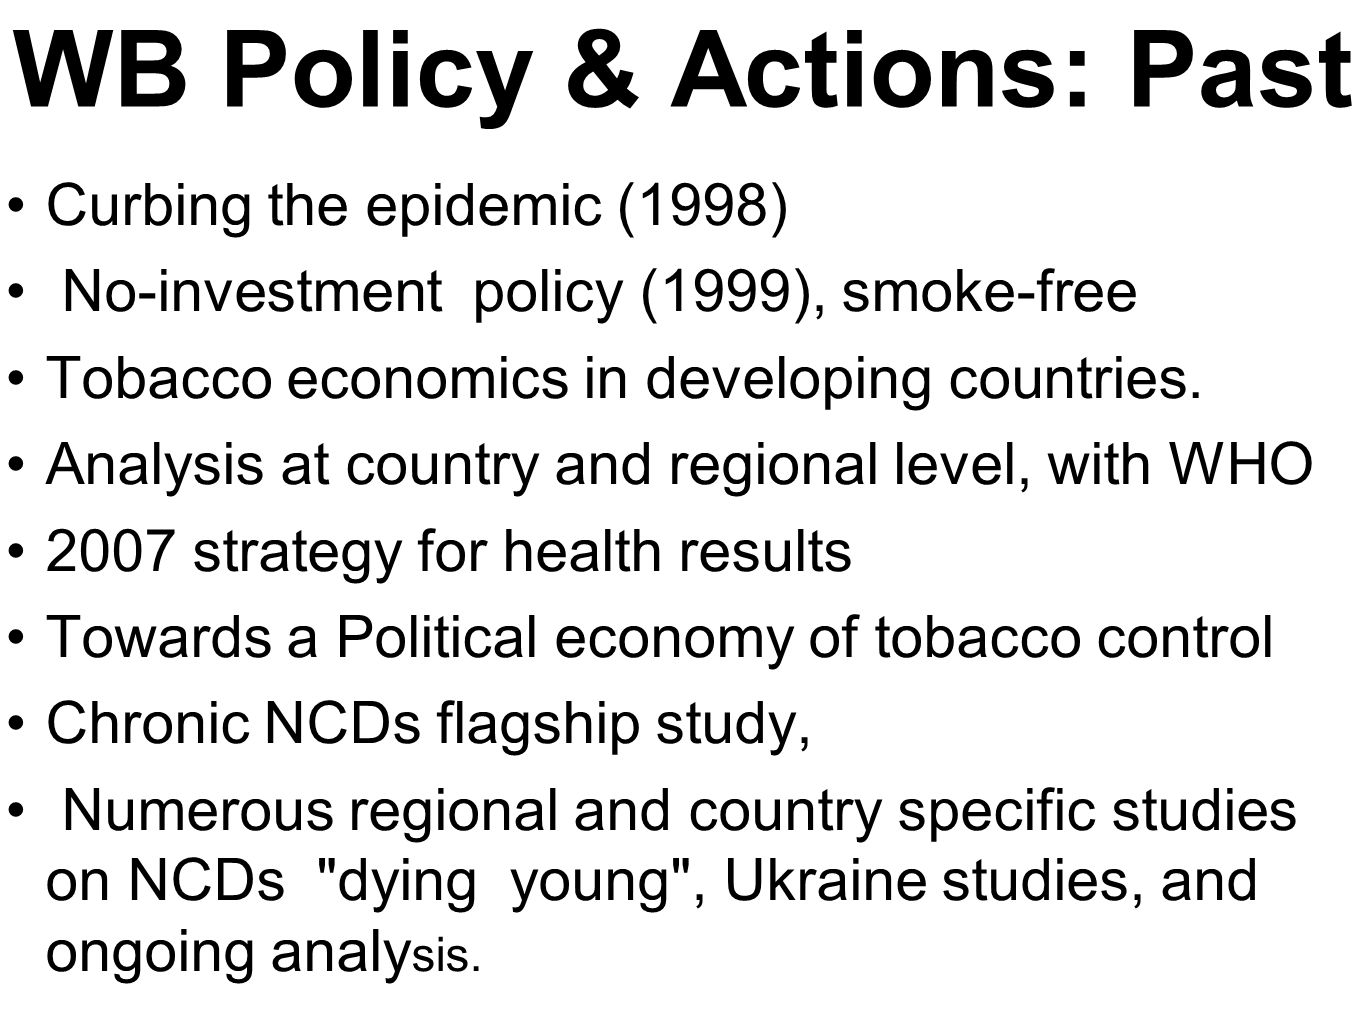 WB Policy & Actions: Past